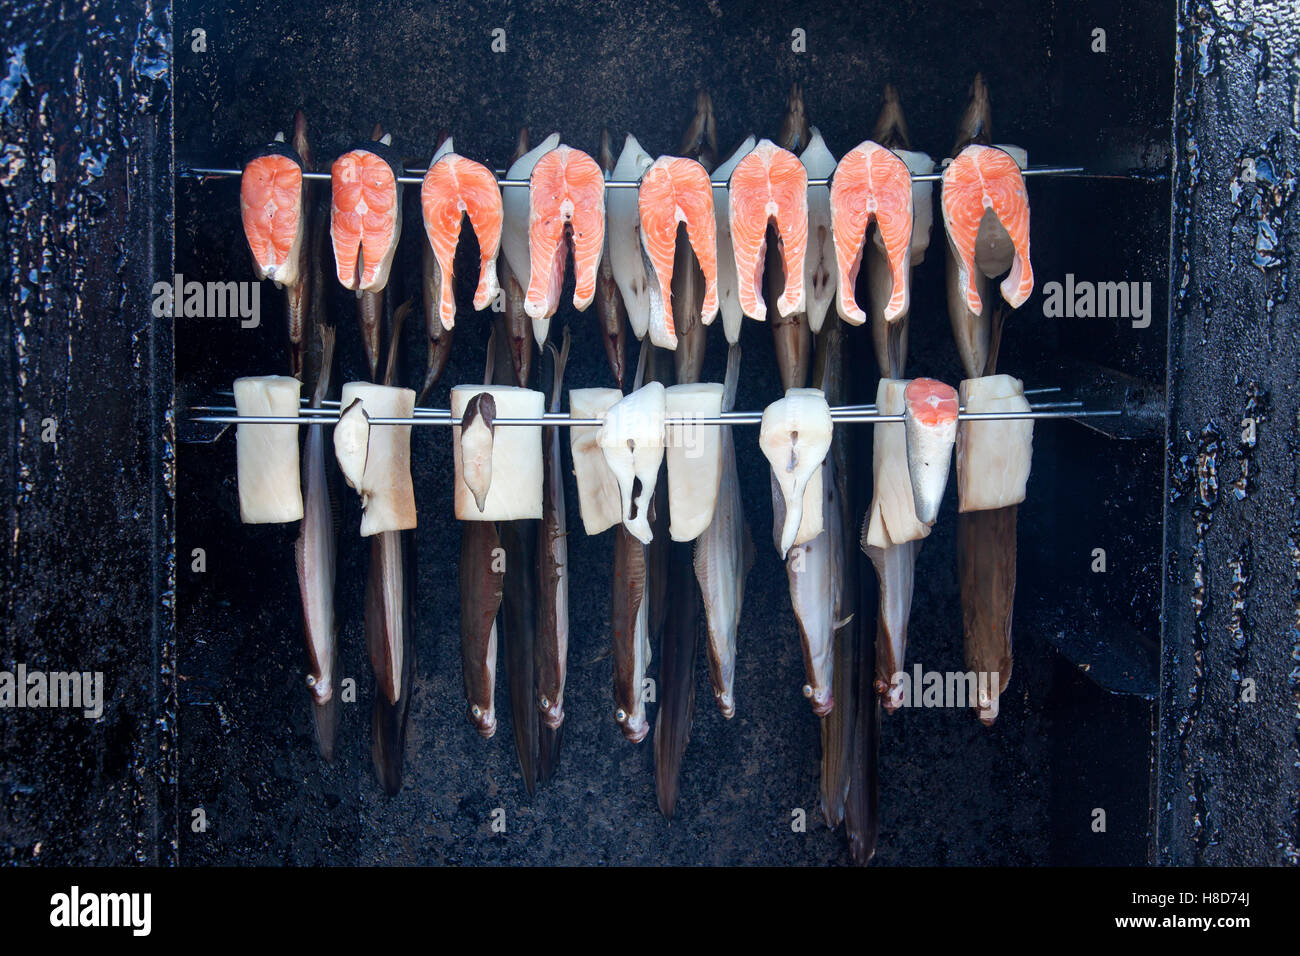 Plaice (Pleuronectes platessa) and other seafish being smoked in fish smoker - Stock Image